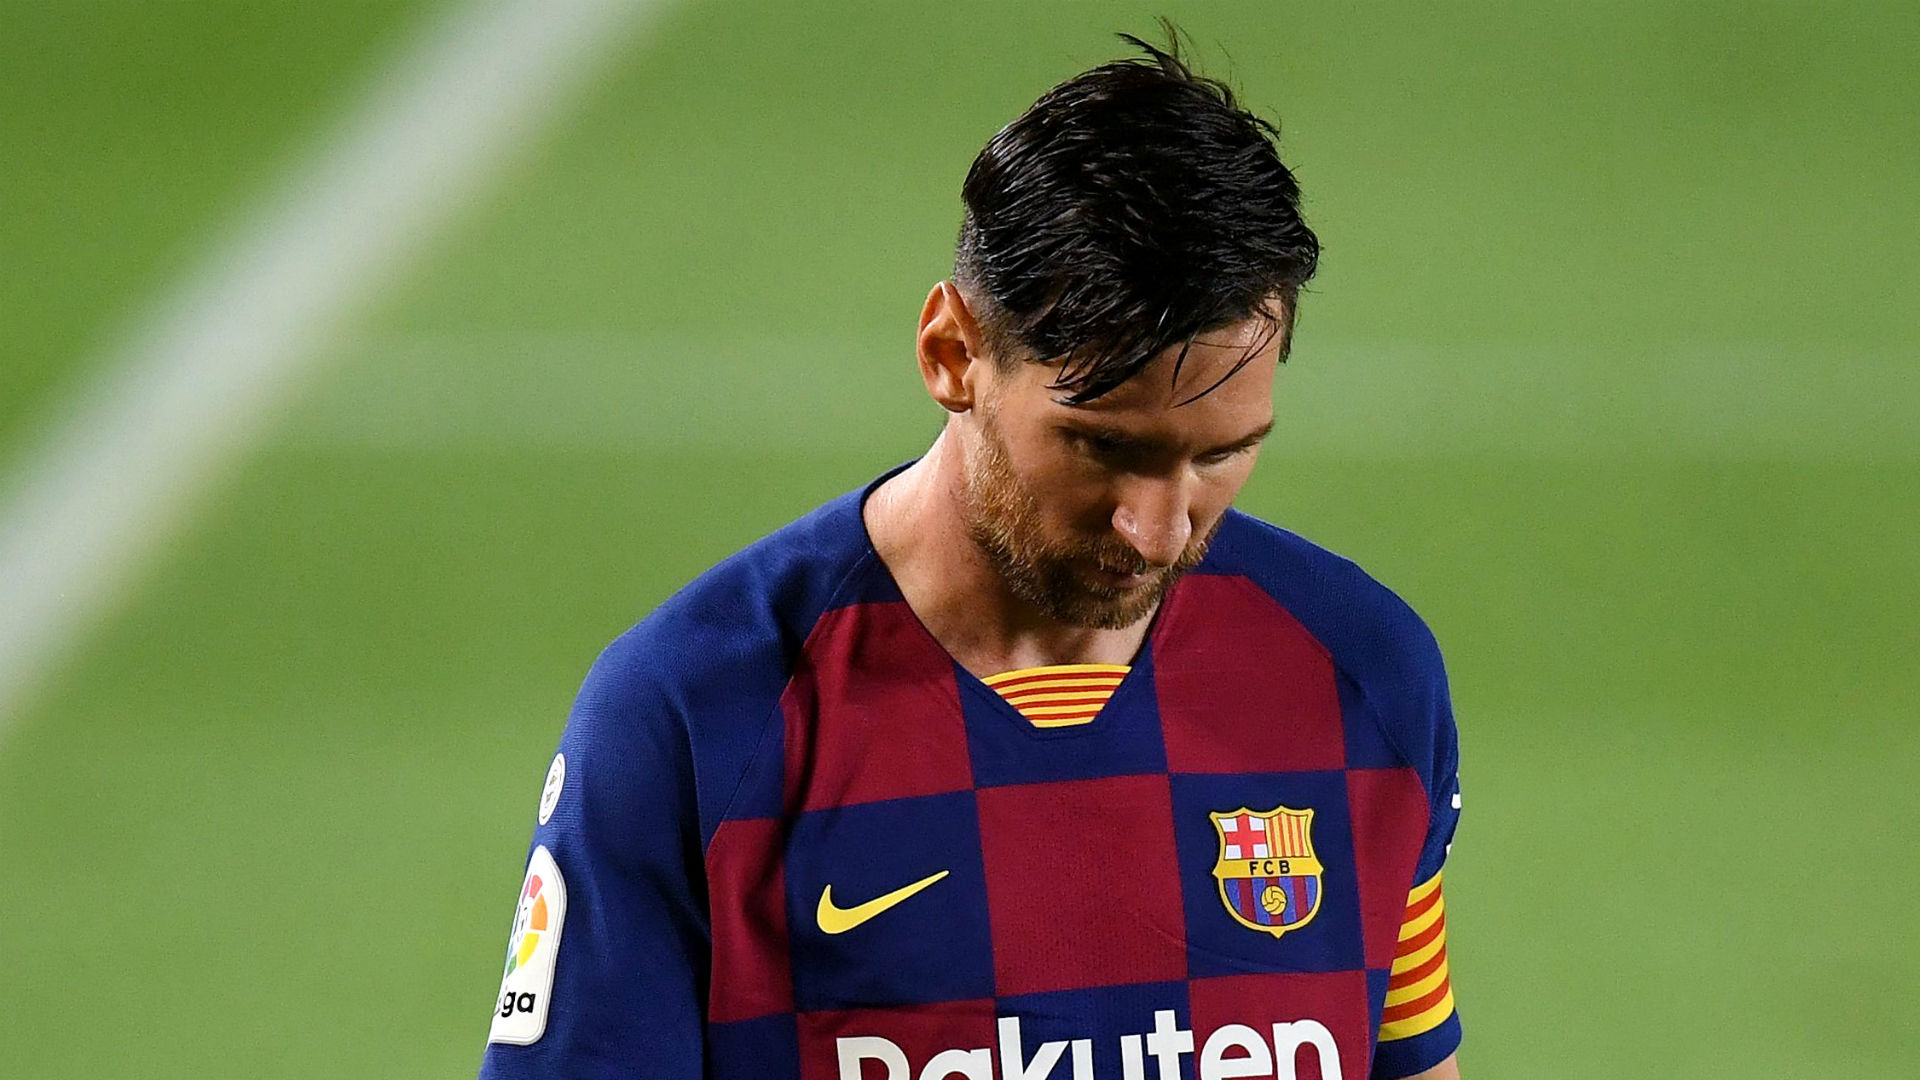 'Barcelona fans don't deserve that' - Messi's image could be ruined by manner of Camp Nou exit, says his first agent